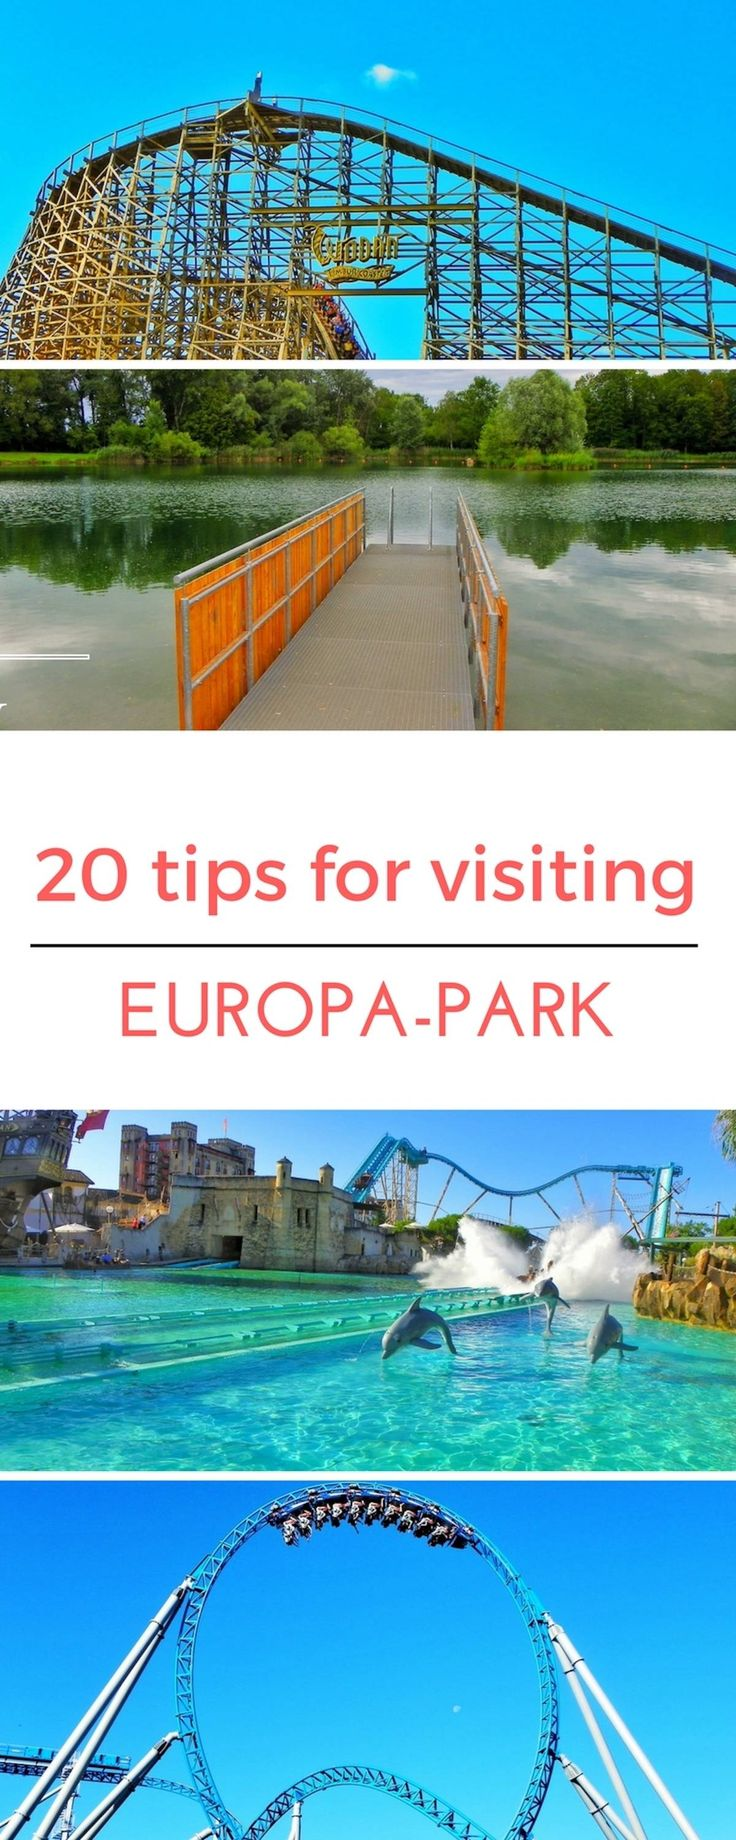 20 tips for visiting Europa-Park theme park in Germany